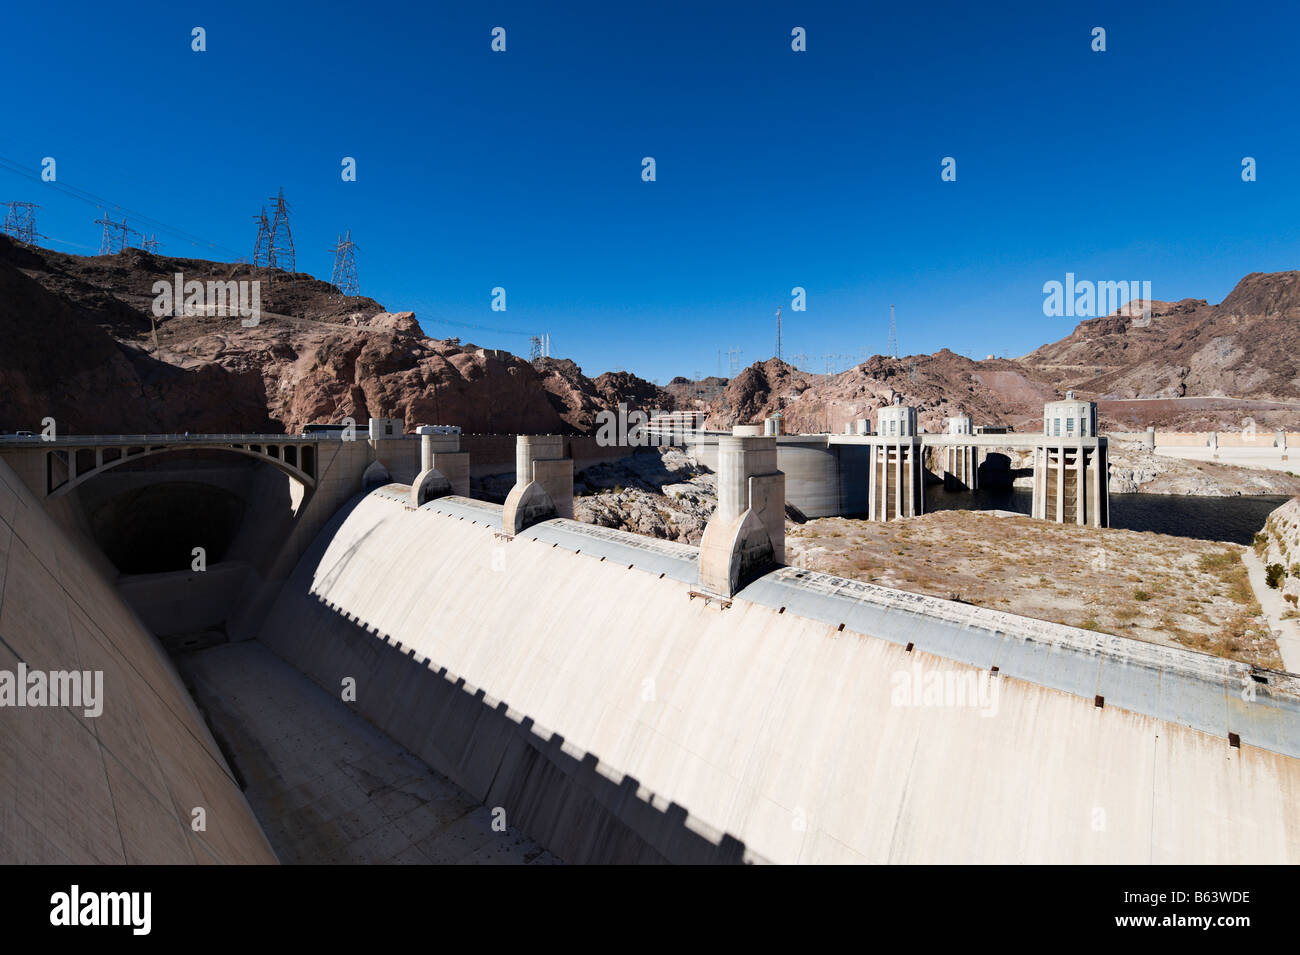 Lake Mead at the Hoover Dam showing the unprecedented low water levels, Arizona / Nevada, USA Stock Photo